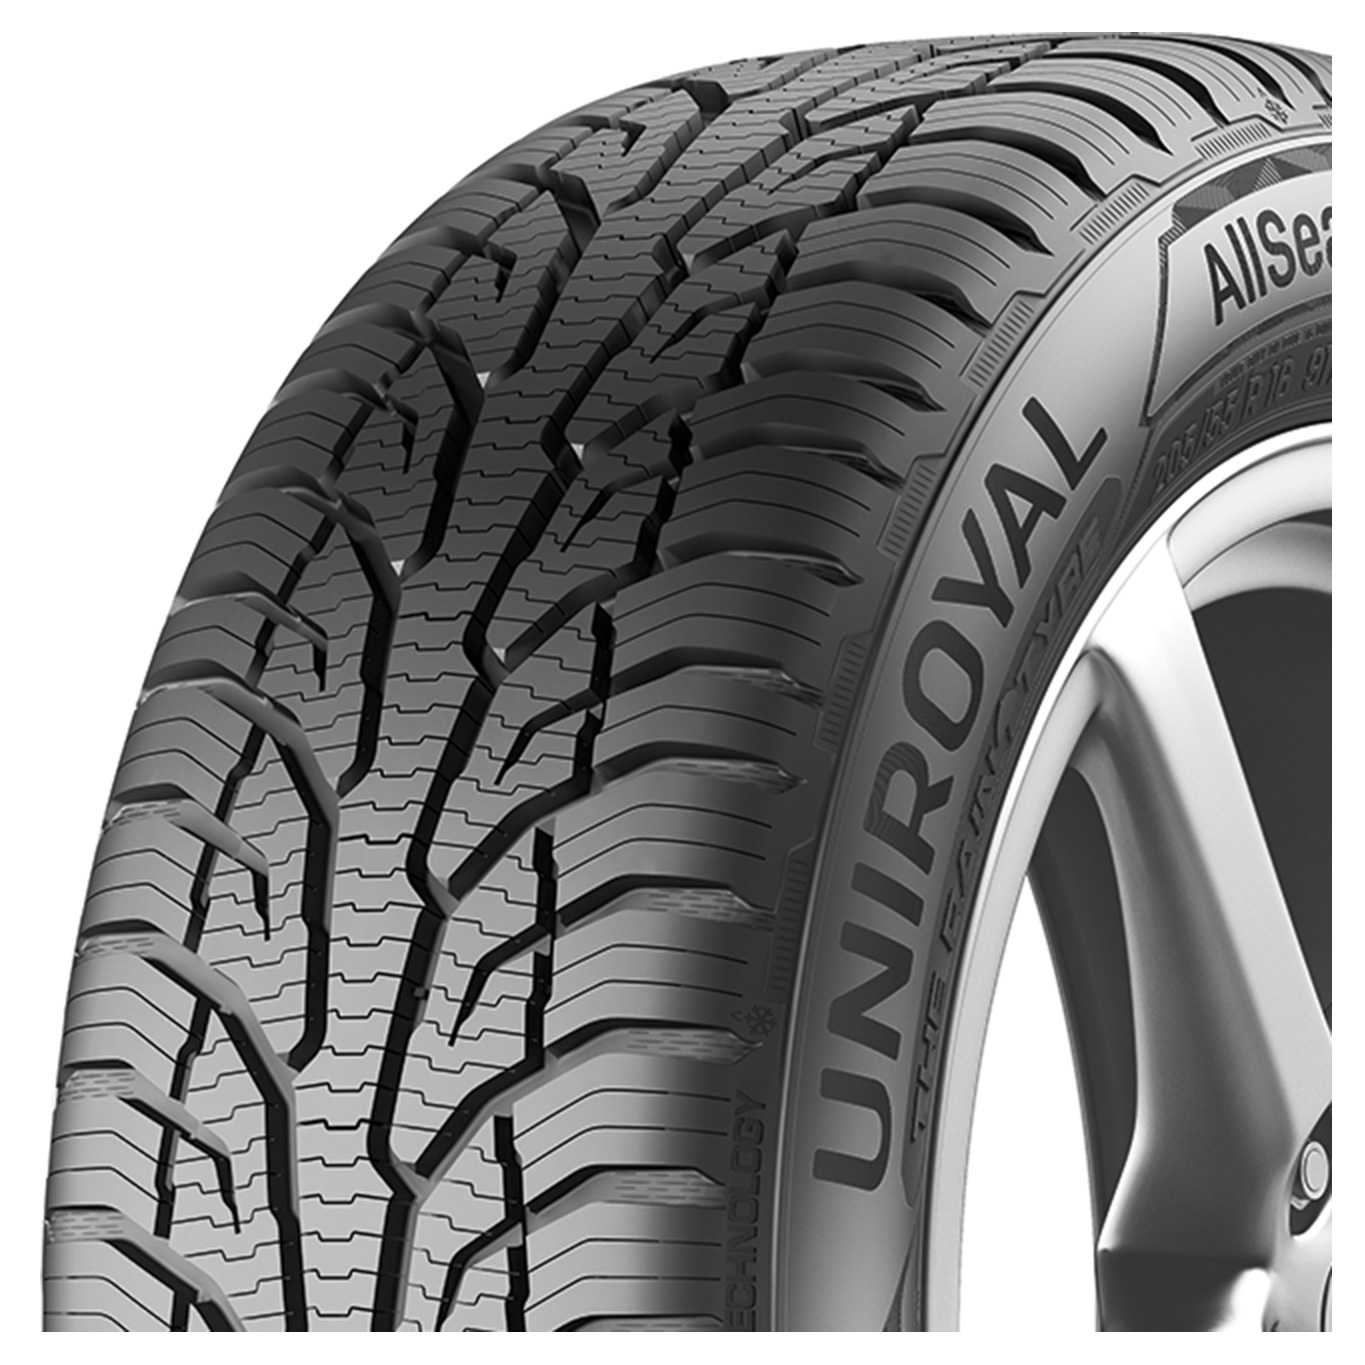 Gomme Nuove Uniroyal 235/60 R18 107V AS EXPERT 2 XL M+S pneumatici nuovi All Season